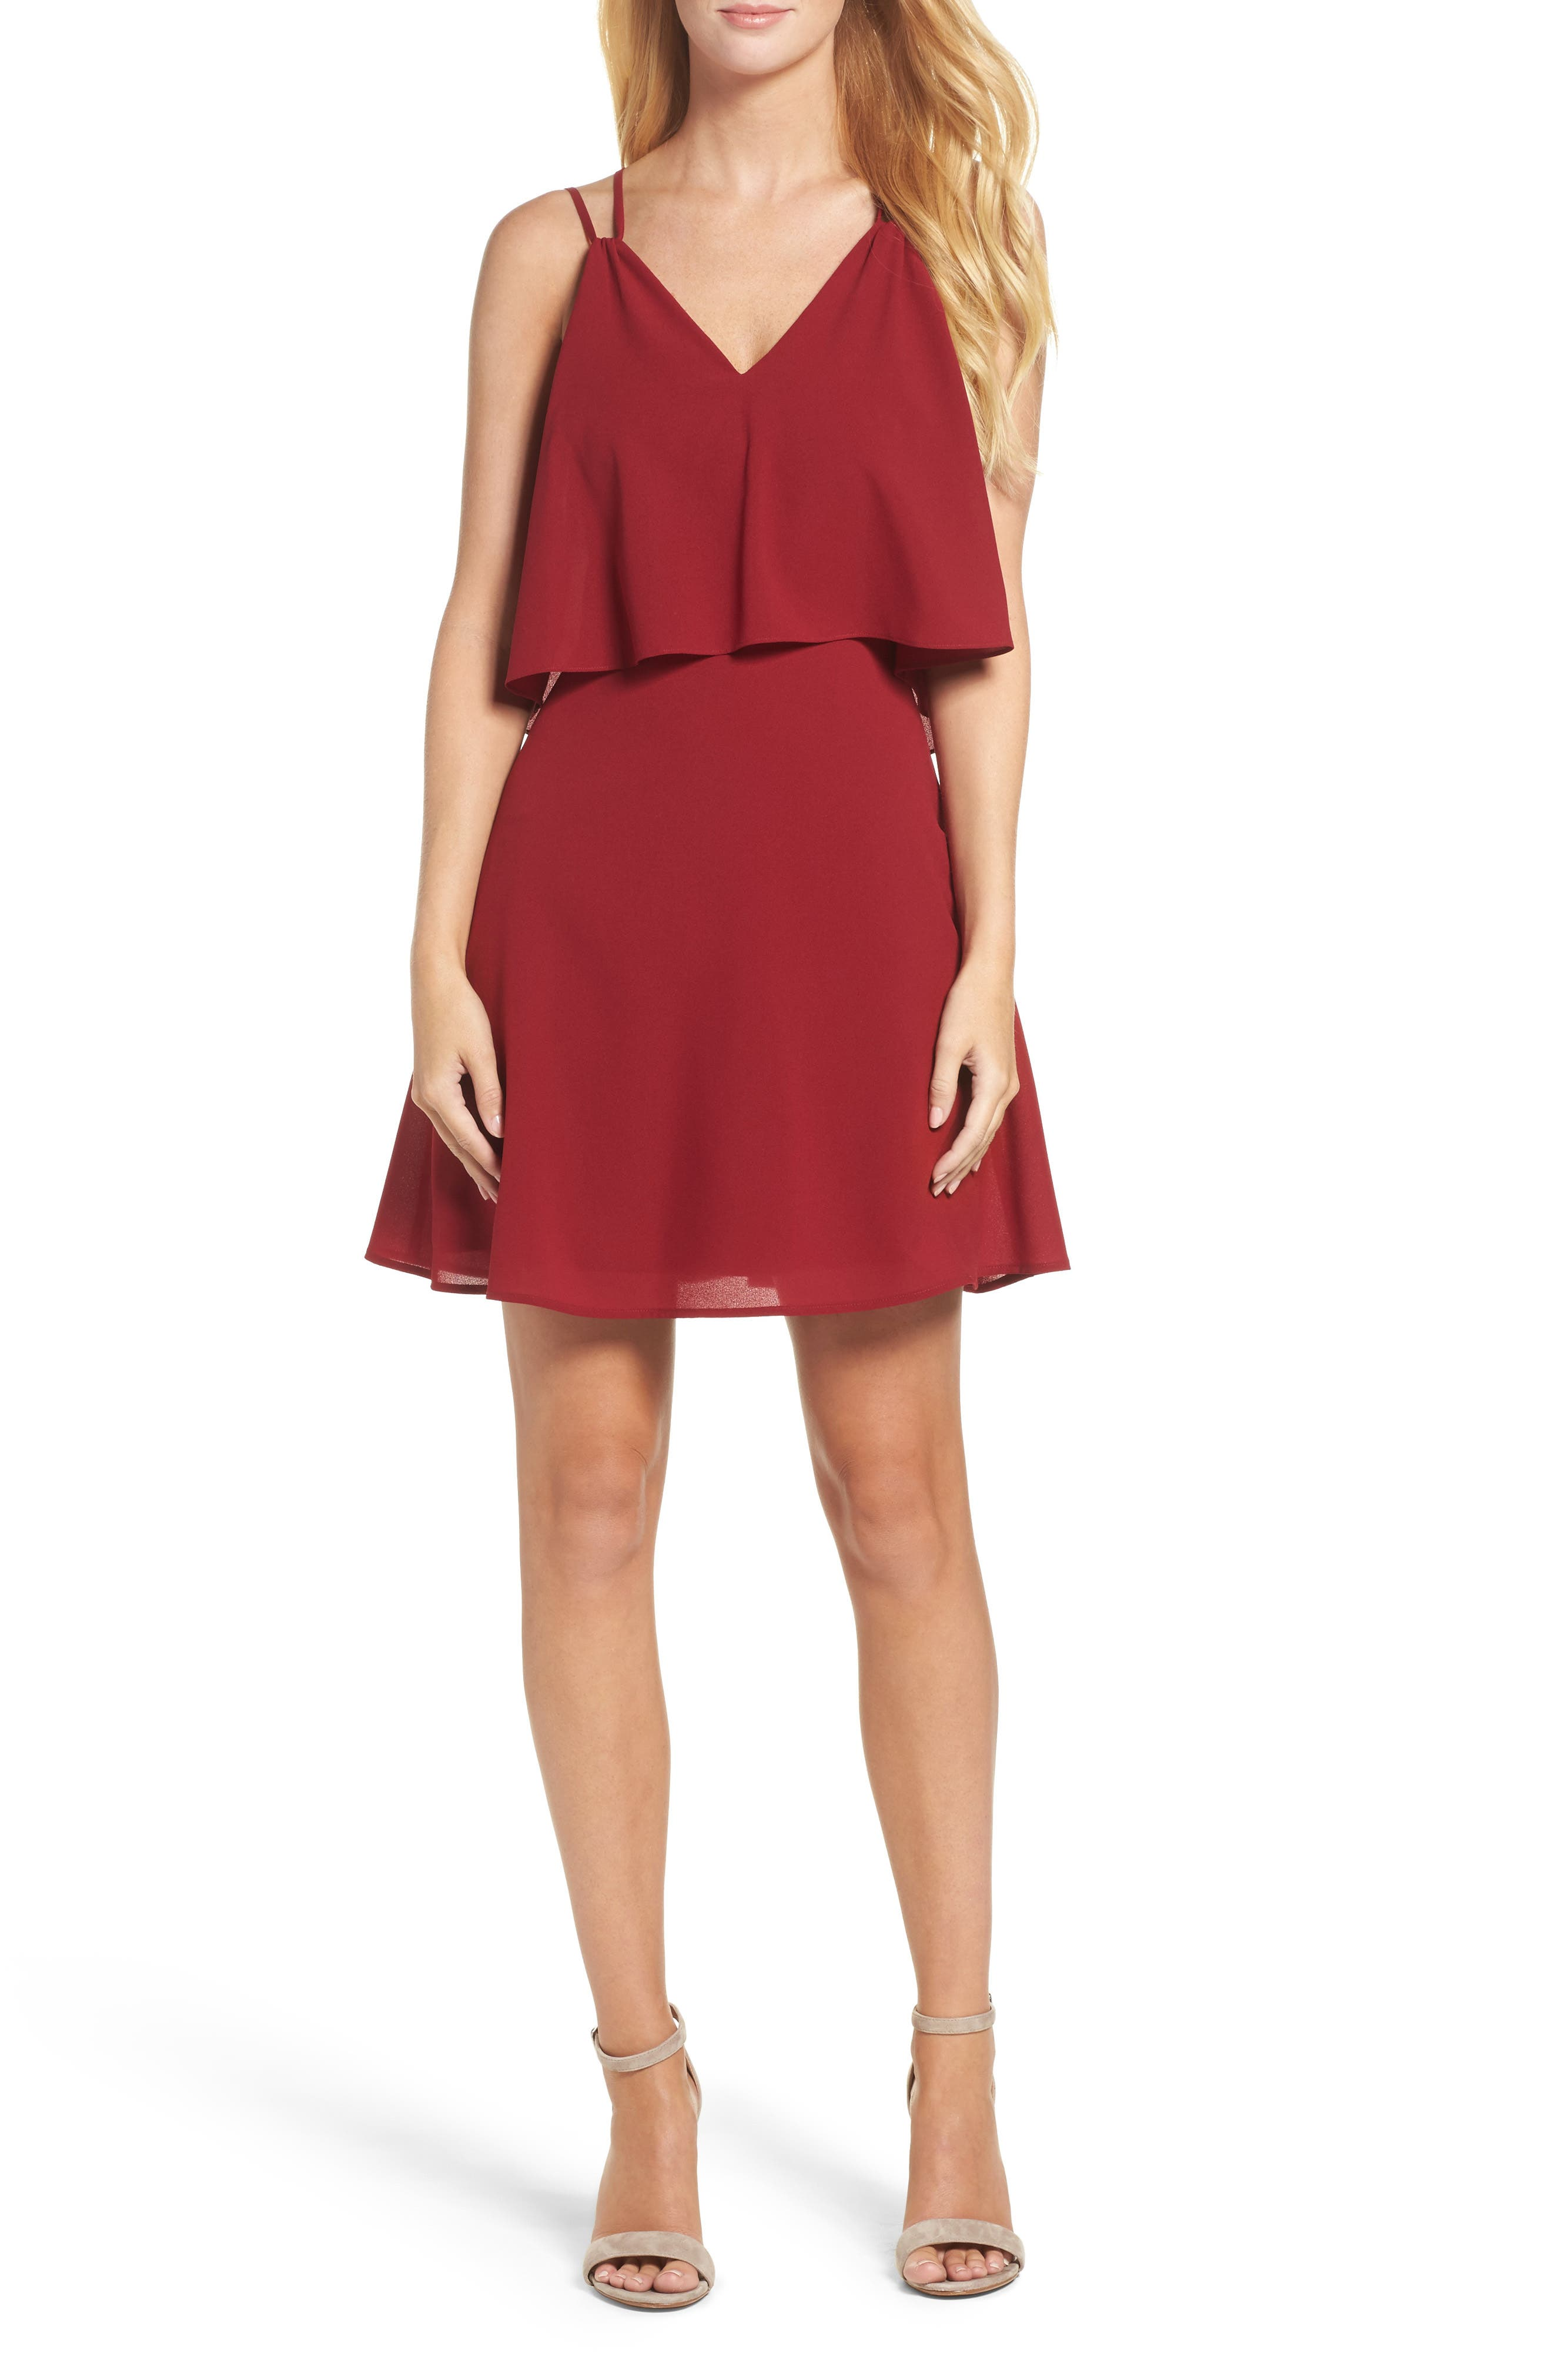 Free Spirit Popover Minidress,                             Main thumbnail 1, color,                             Burgundy